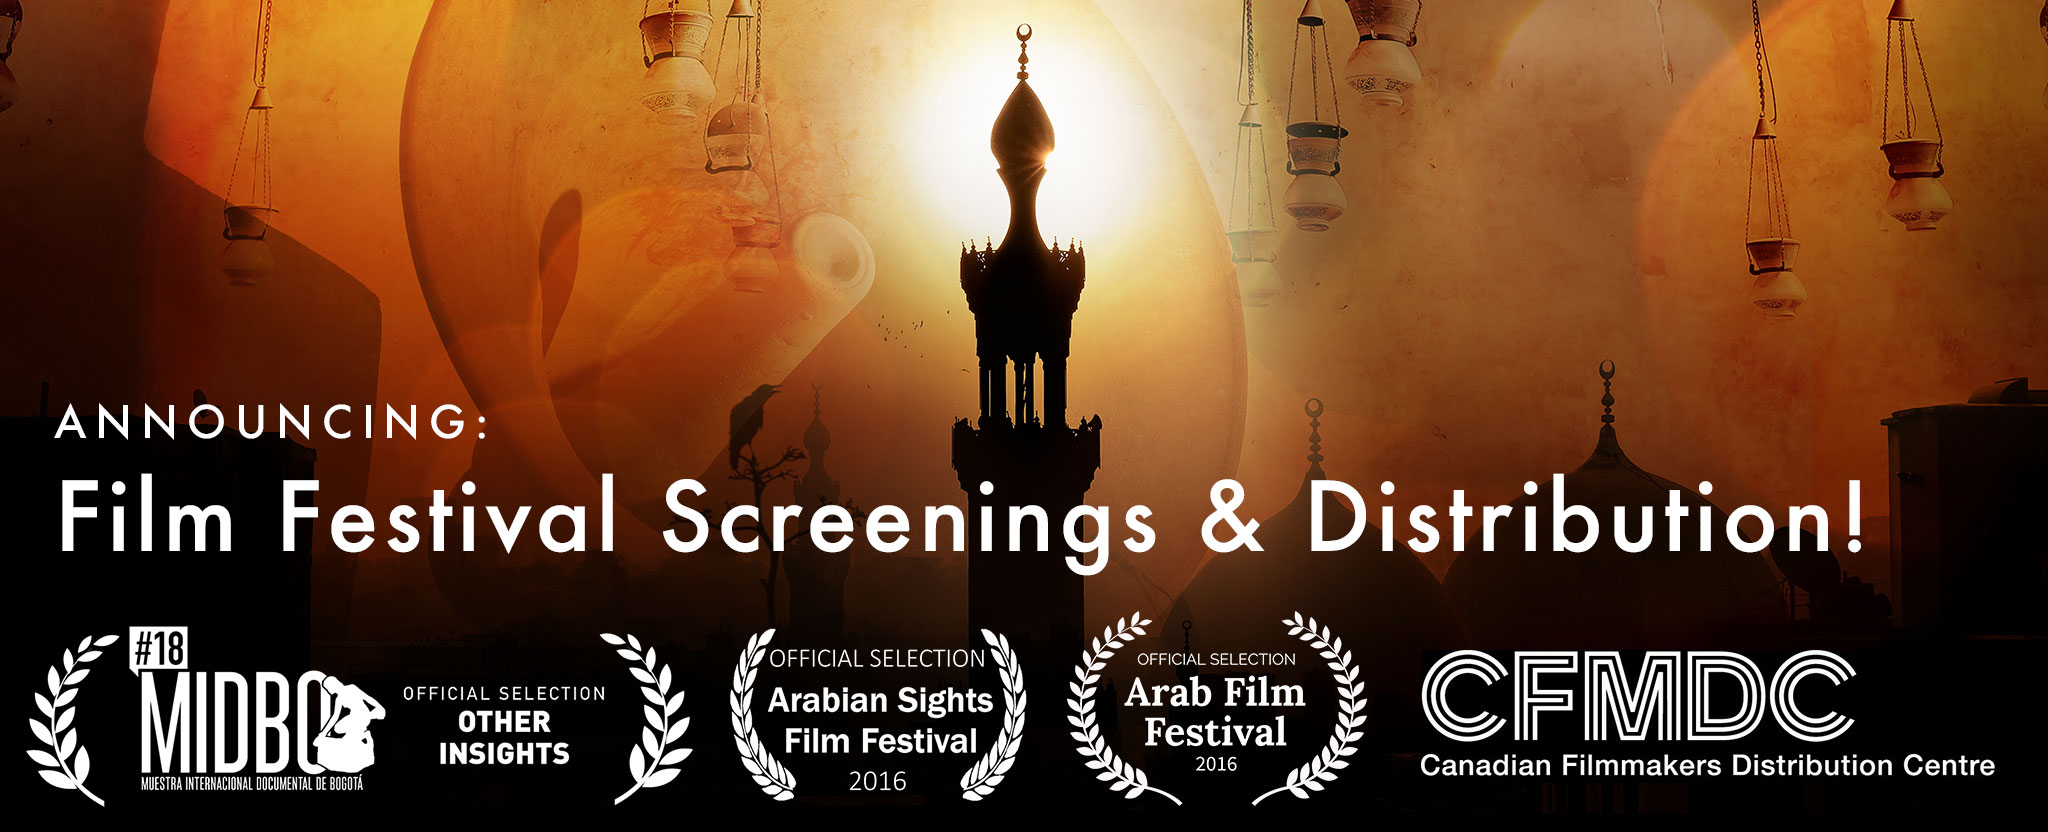 cairo-in-one-breat-film-festival-2